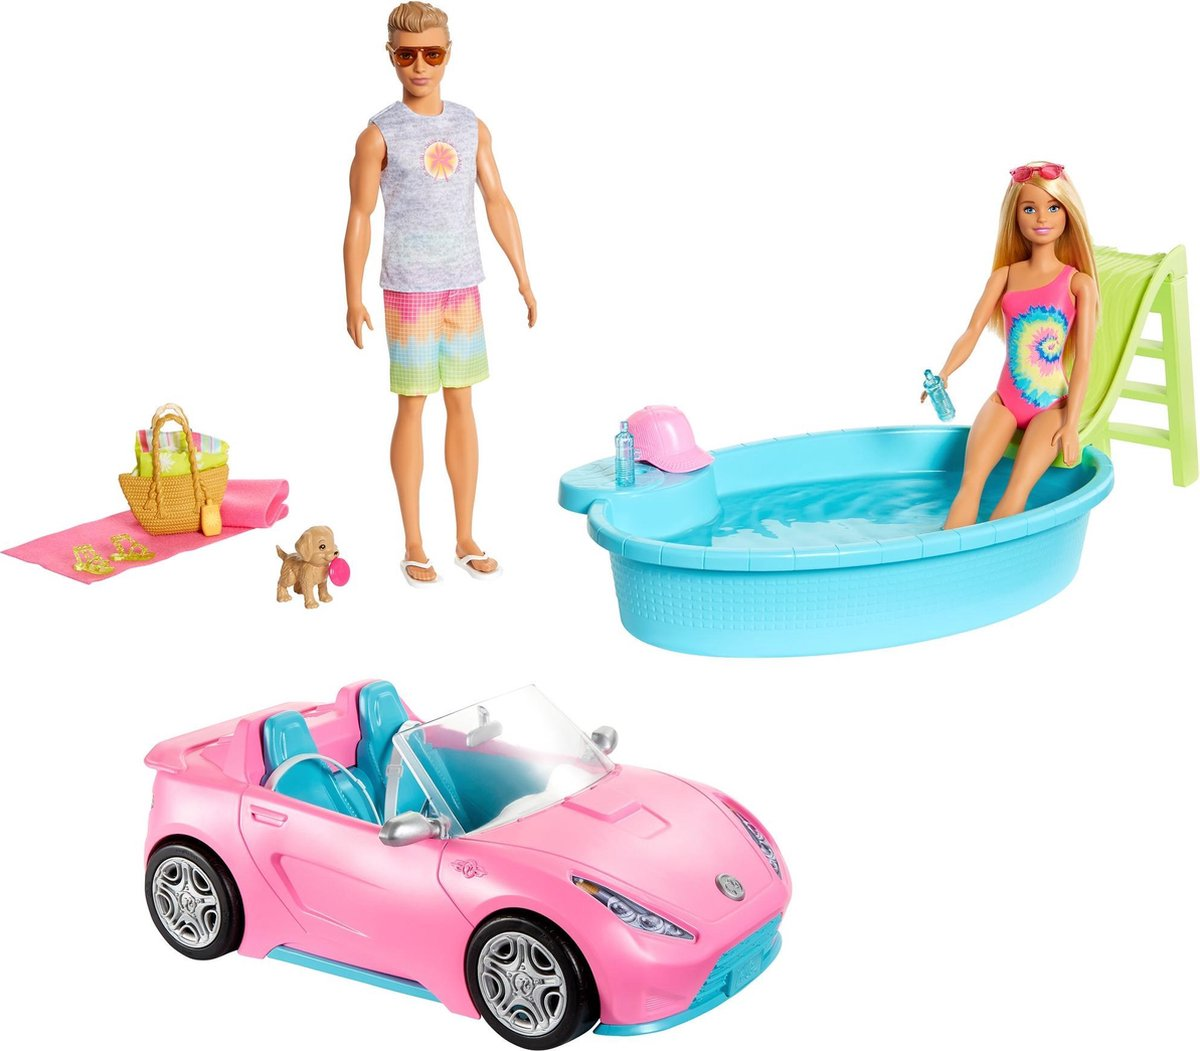 Barbie 2 in 1 Zwembad en Cabrio - Speelset